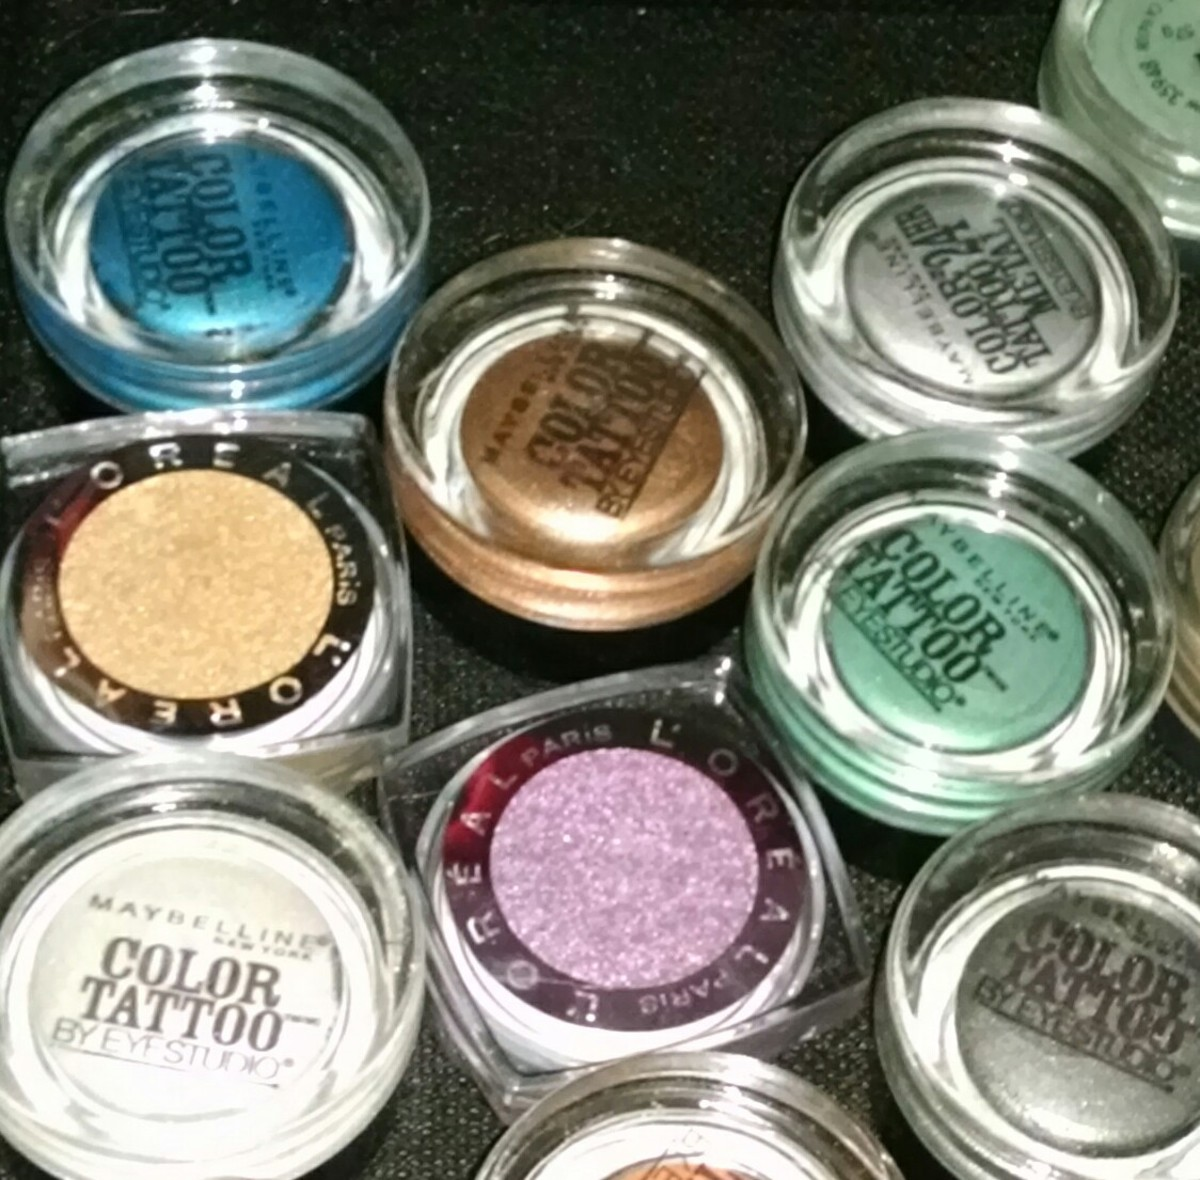 Maybelline Color Tattoo vs. L'Oreal Infallible Eye Shadow—Which Is the Best Drugstore Eyeshadow?